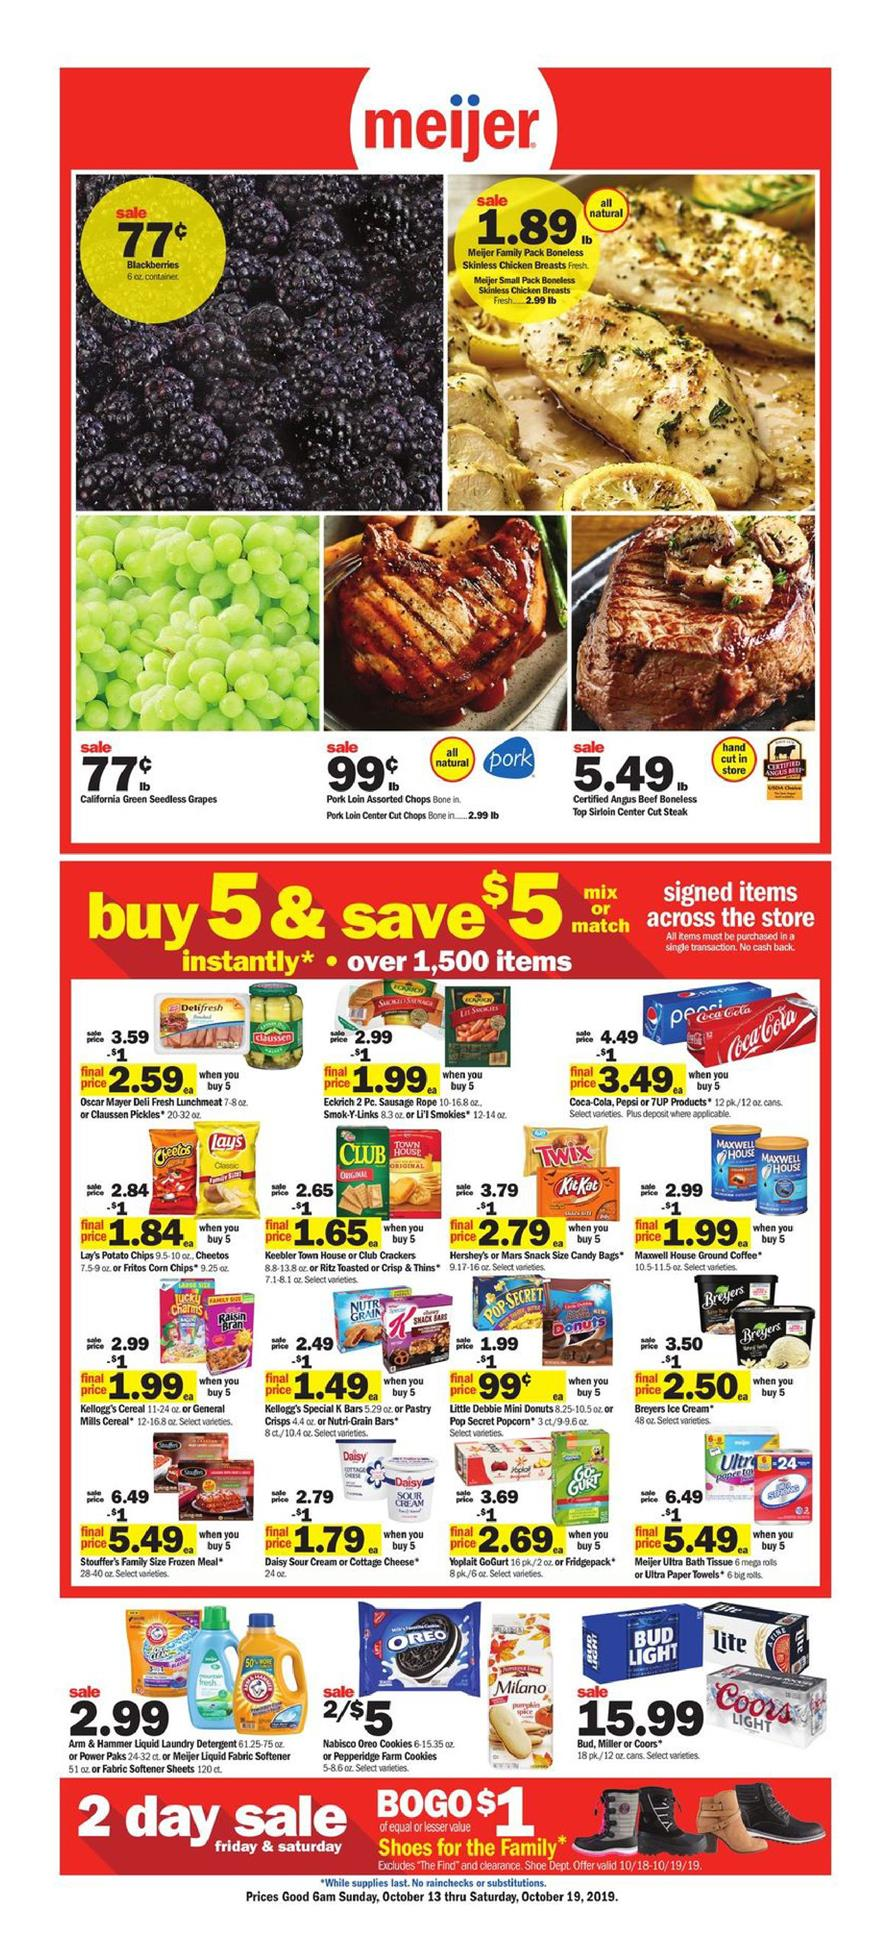 meijer weekly ad oct 13 2019